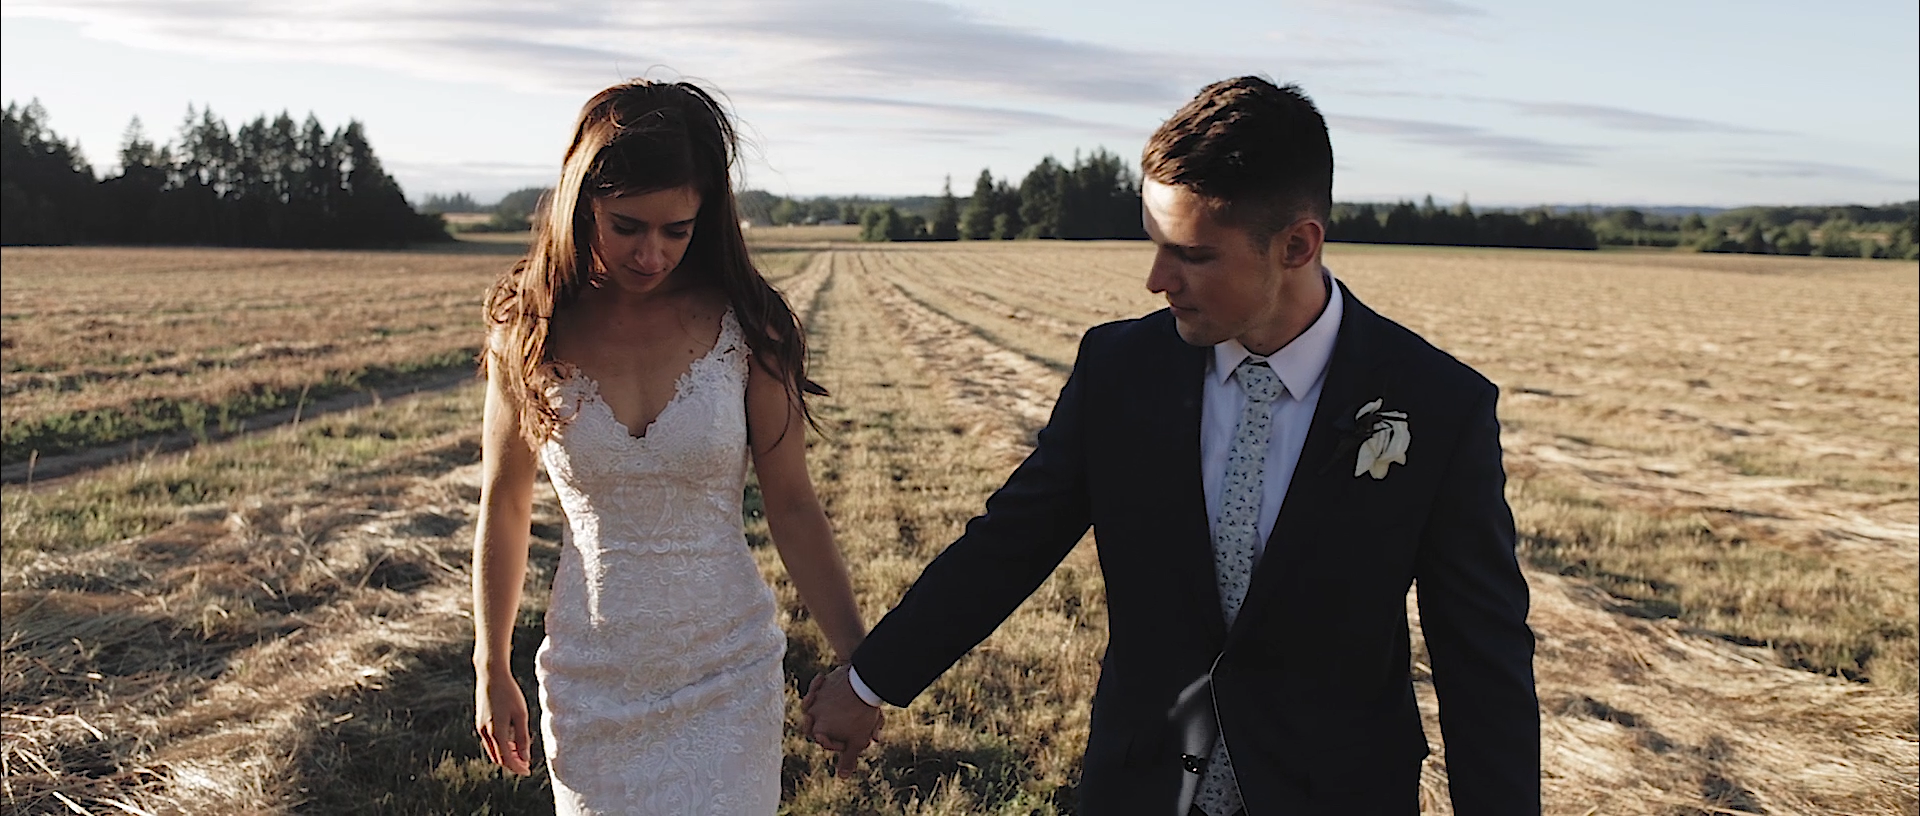 Kelsey + Caleb | Scholls, Oregon | Scholl's Valley Lodge, Scholls